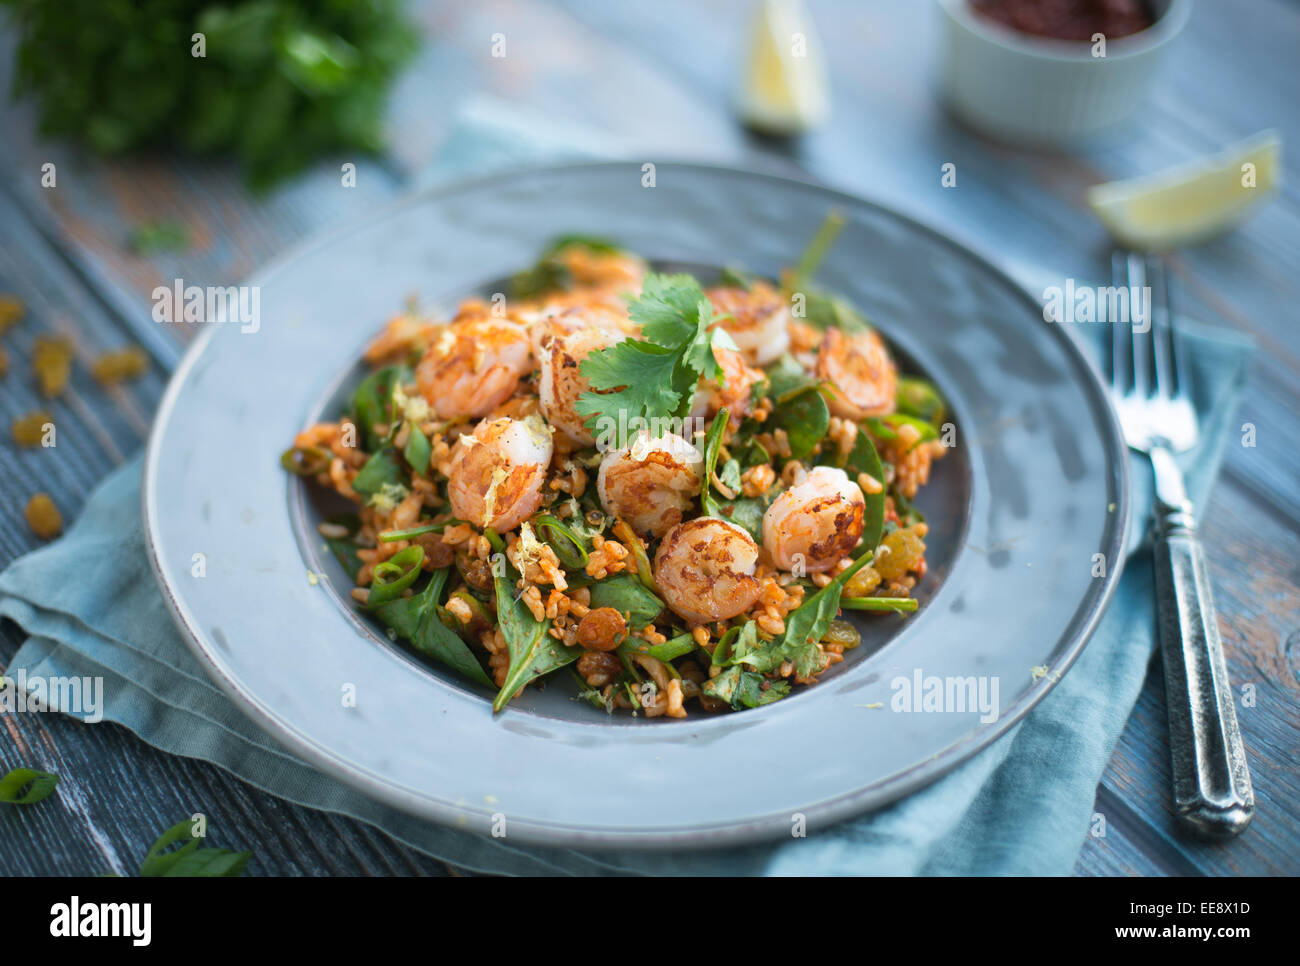 Harissa rice and greens and seared shrimp - Stock Image